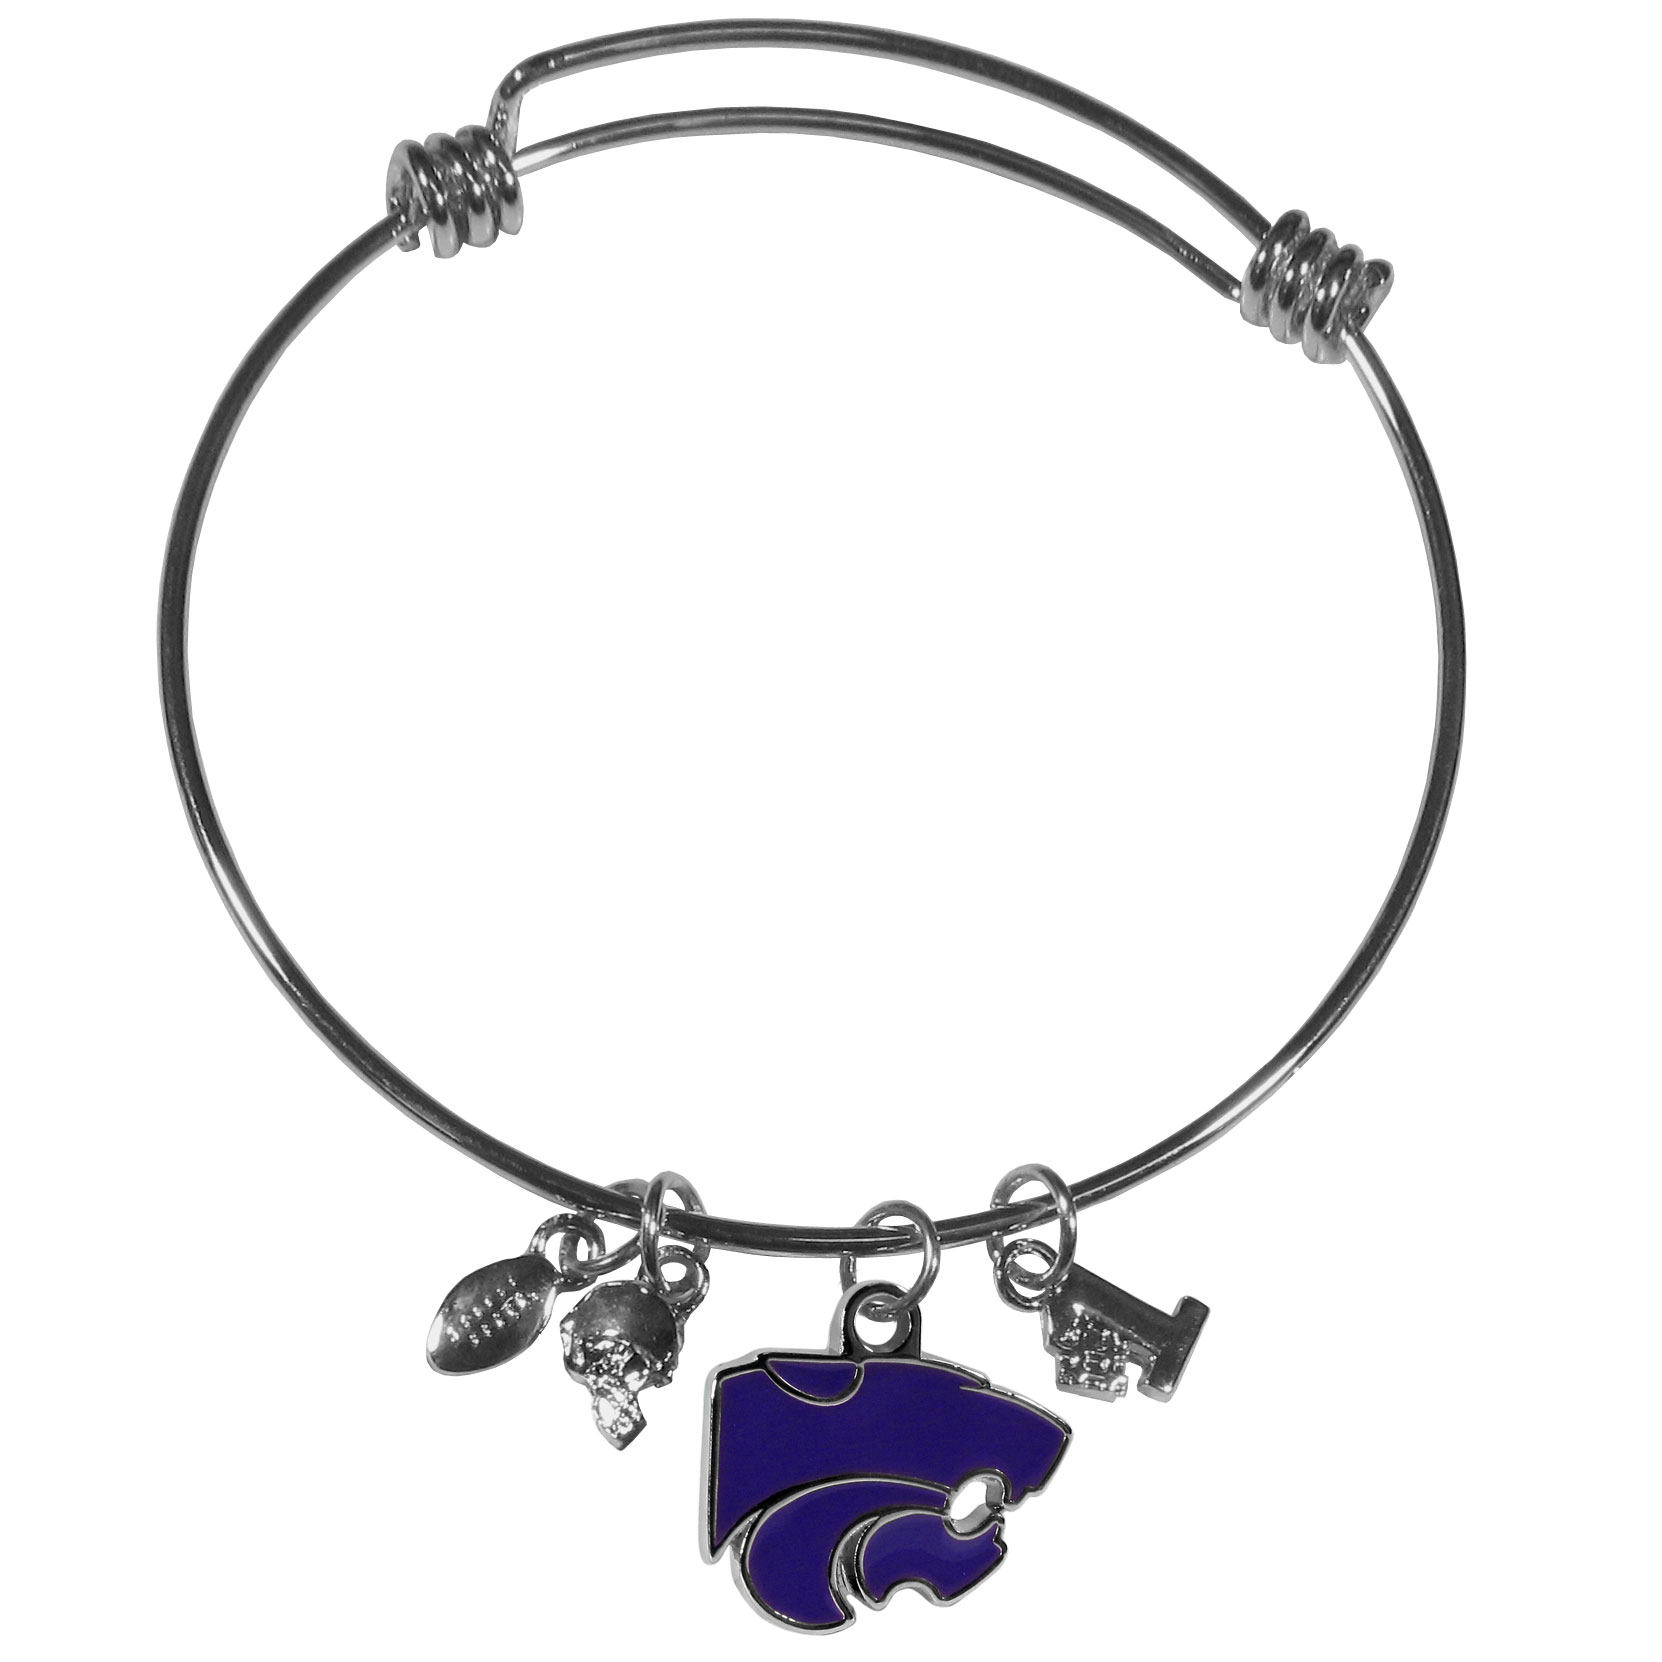 Kansas St. Wildcats Charm Bangle Bracelet - Adjustable wire bracelets are all the rage and this Kansas St. Wildcats bracelet matches the popular trend with your beloved team. The bracelet features 4 charms in total, each feature exceptional detail and the team charm has enameled team colors.